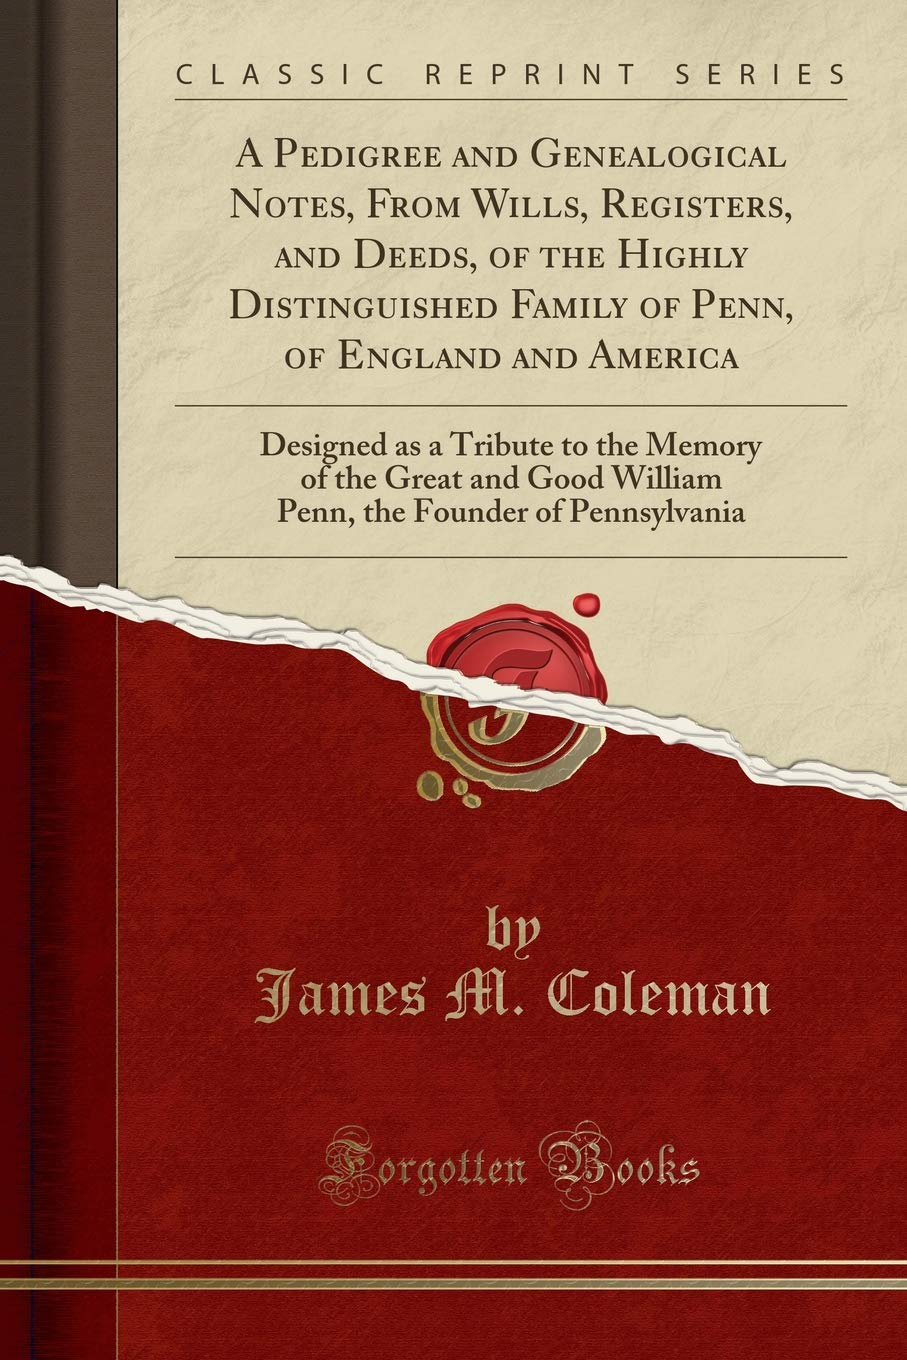 Download A Pedigree and Genealogical Notes, From Wills, Registers, and Deeds, of the Highly Distinguished Family of Penn, of England and America: Designed as a ... the Founder of Pennsylvania (Classic Reprint) PDF